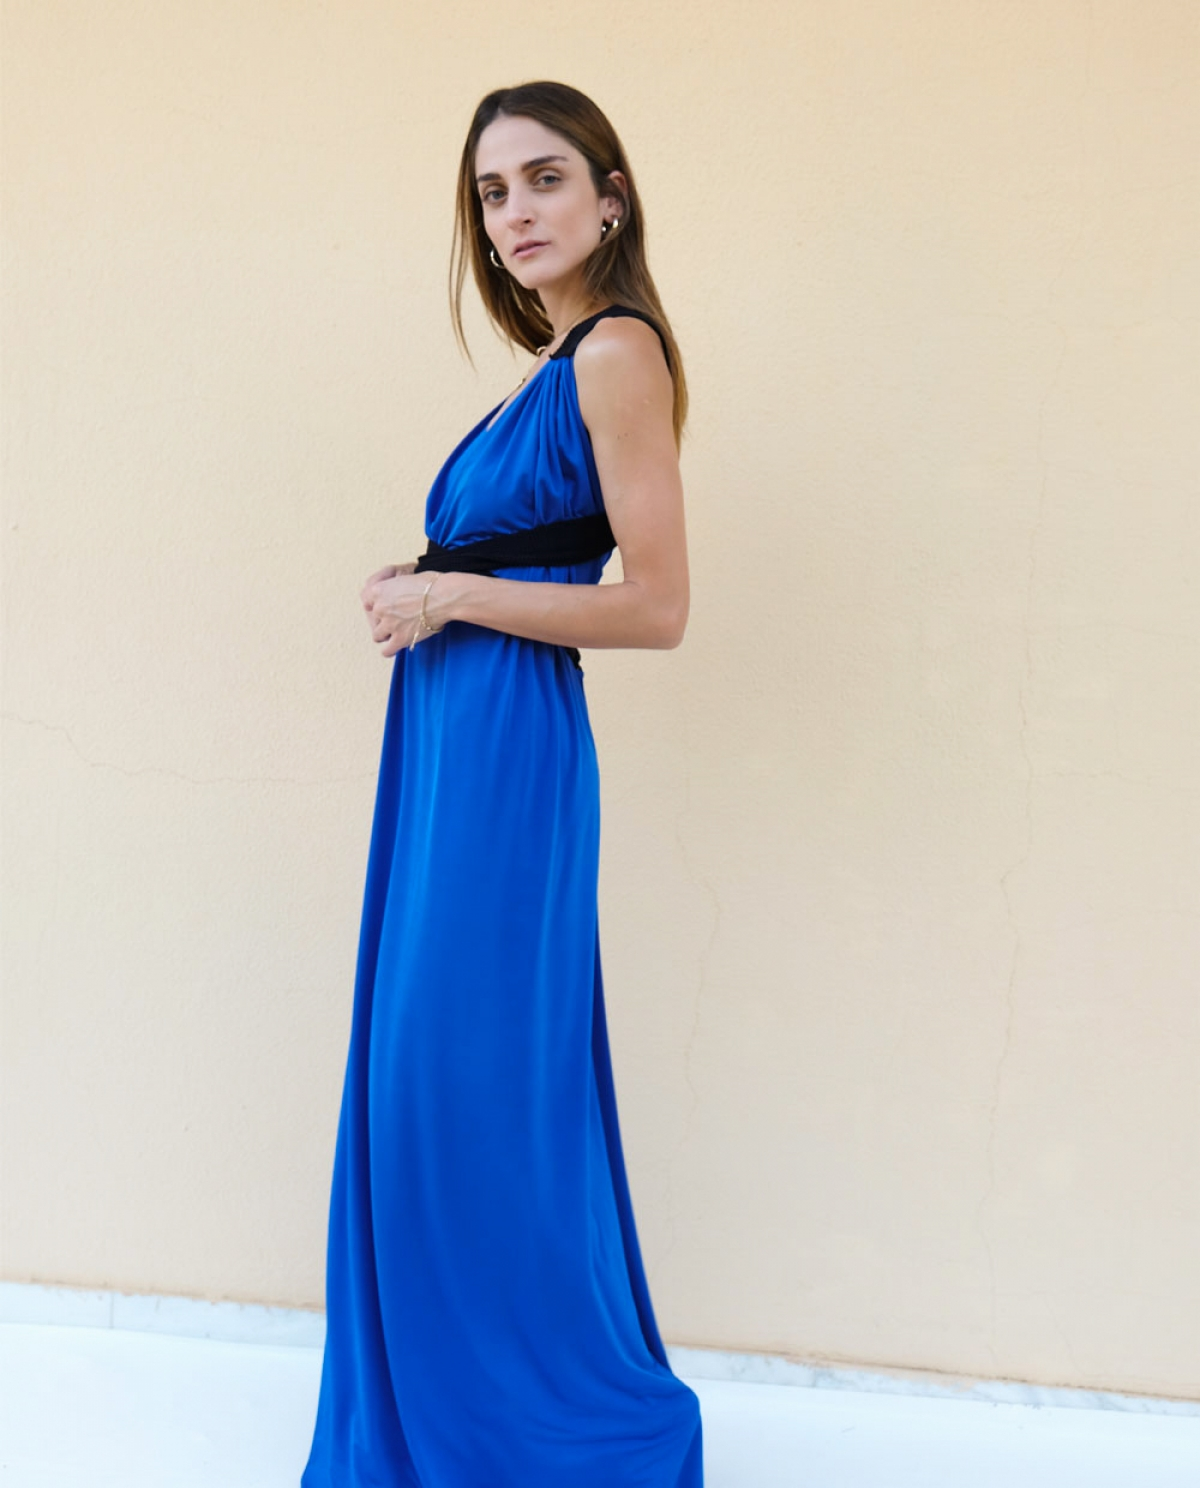 Topsun Blue Maxi Dress